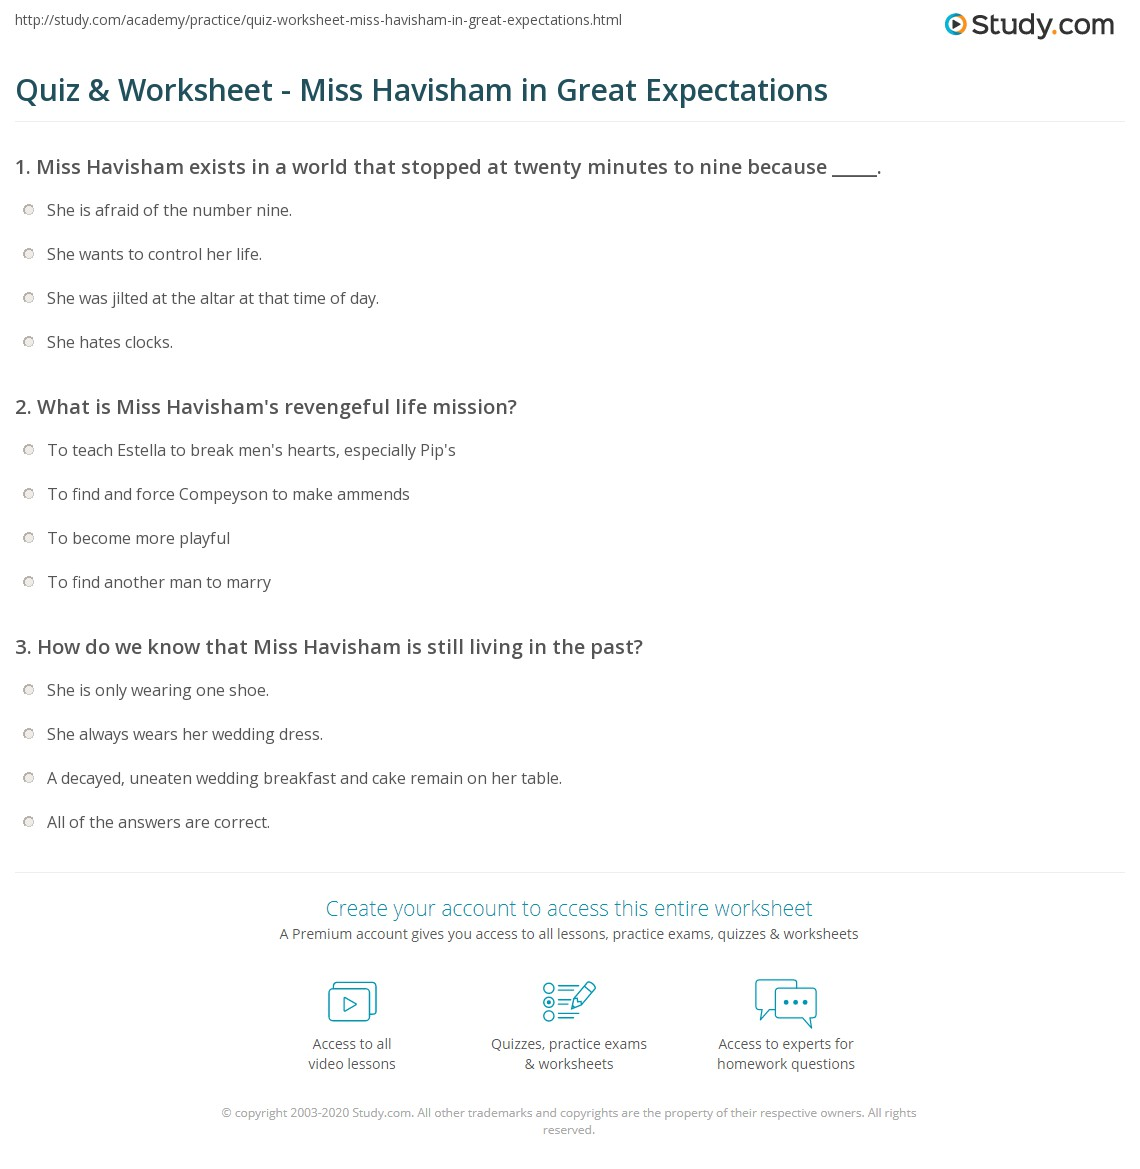 great expectations wedding cake description quiz amp worksheet miss havisham in great expectations 14923